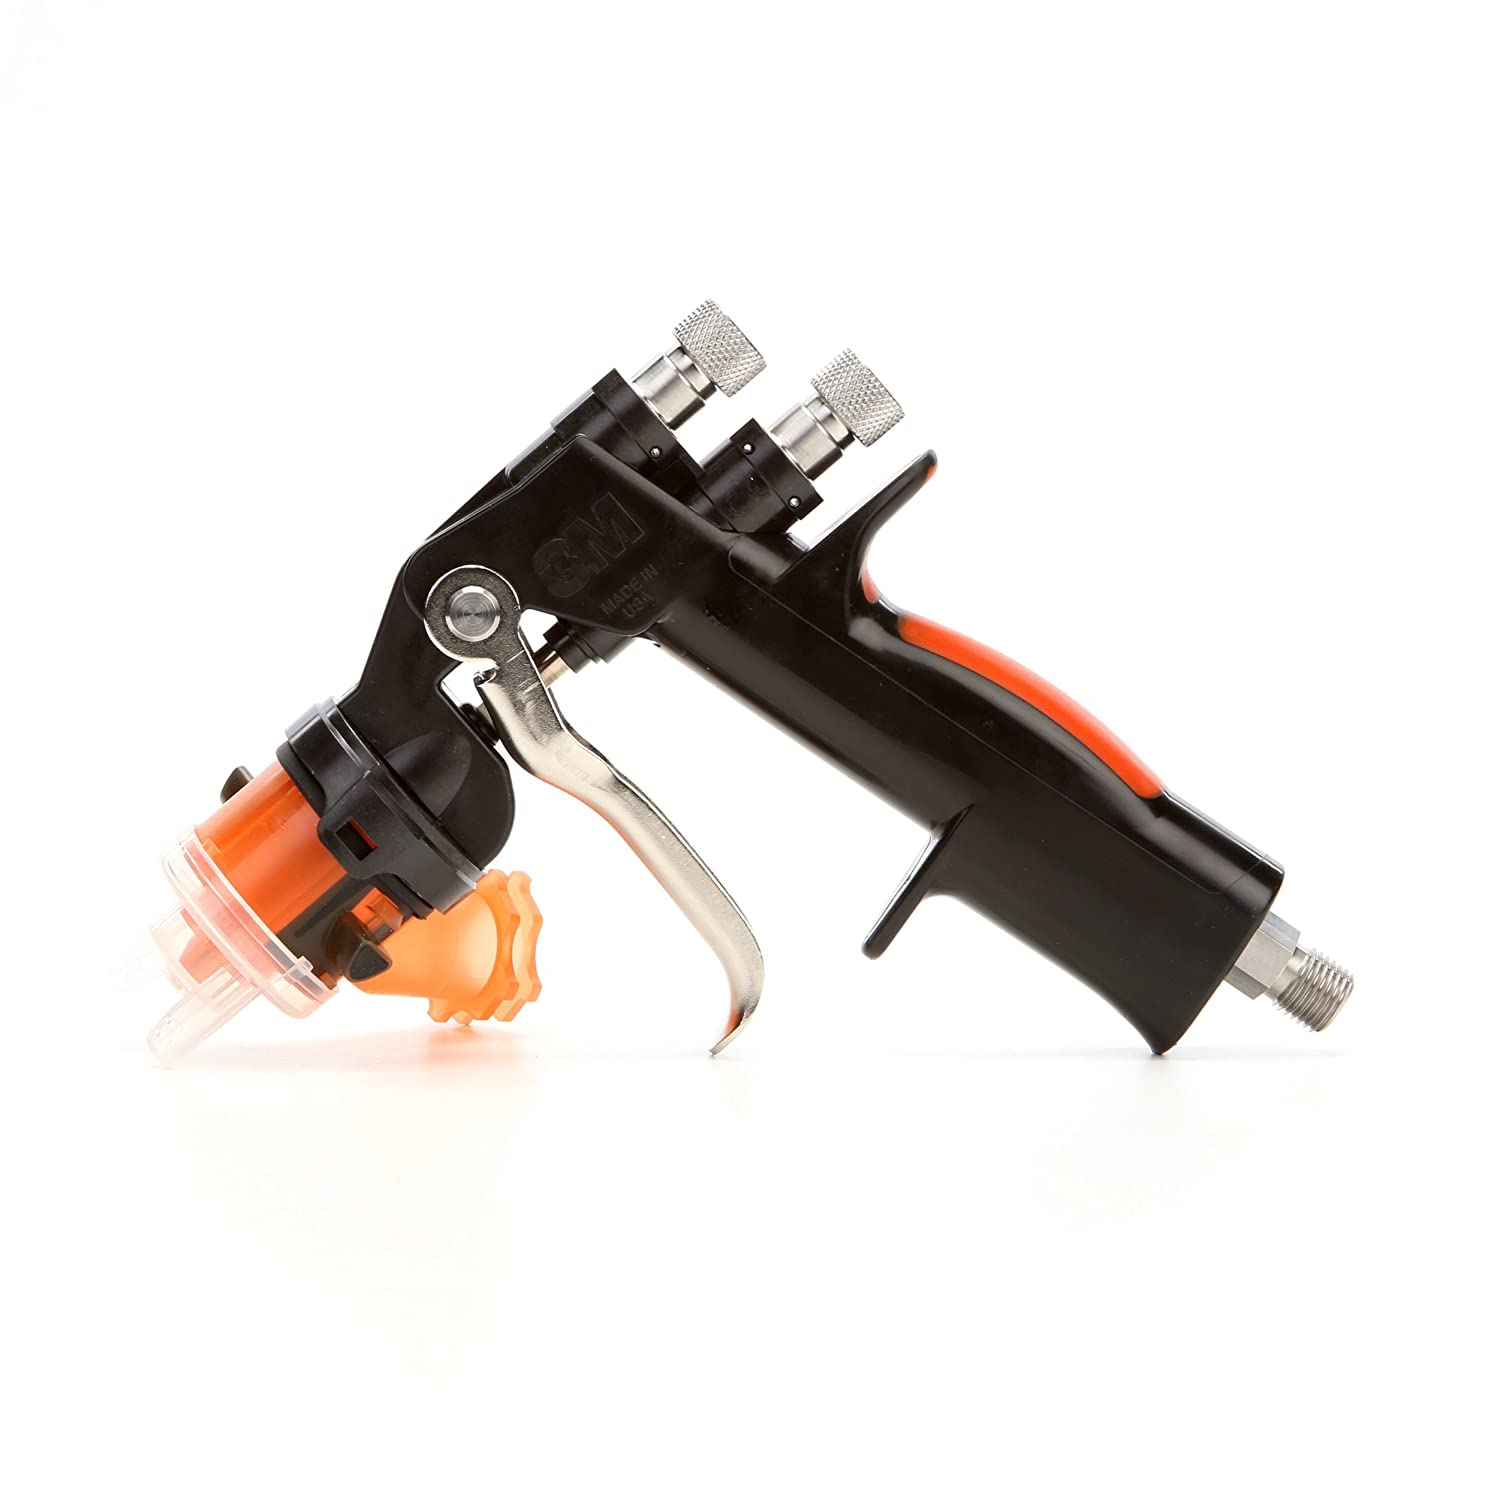 3M 16580 Accuspray Spray Gun System